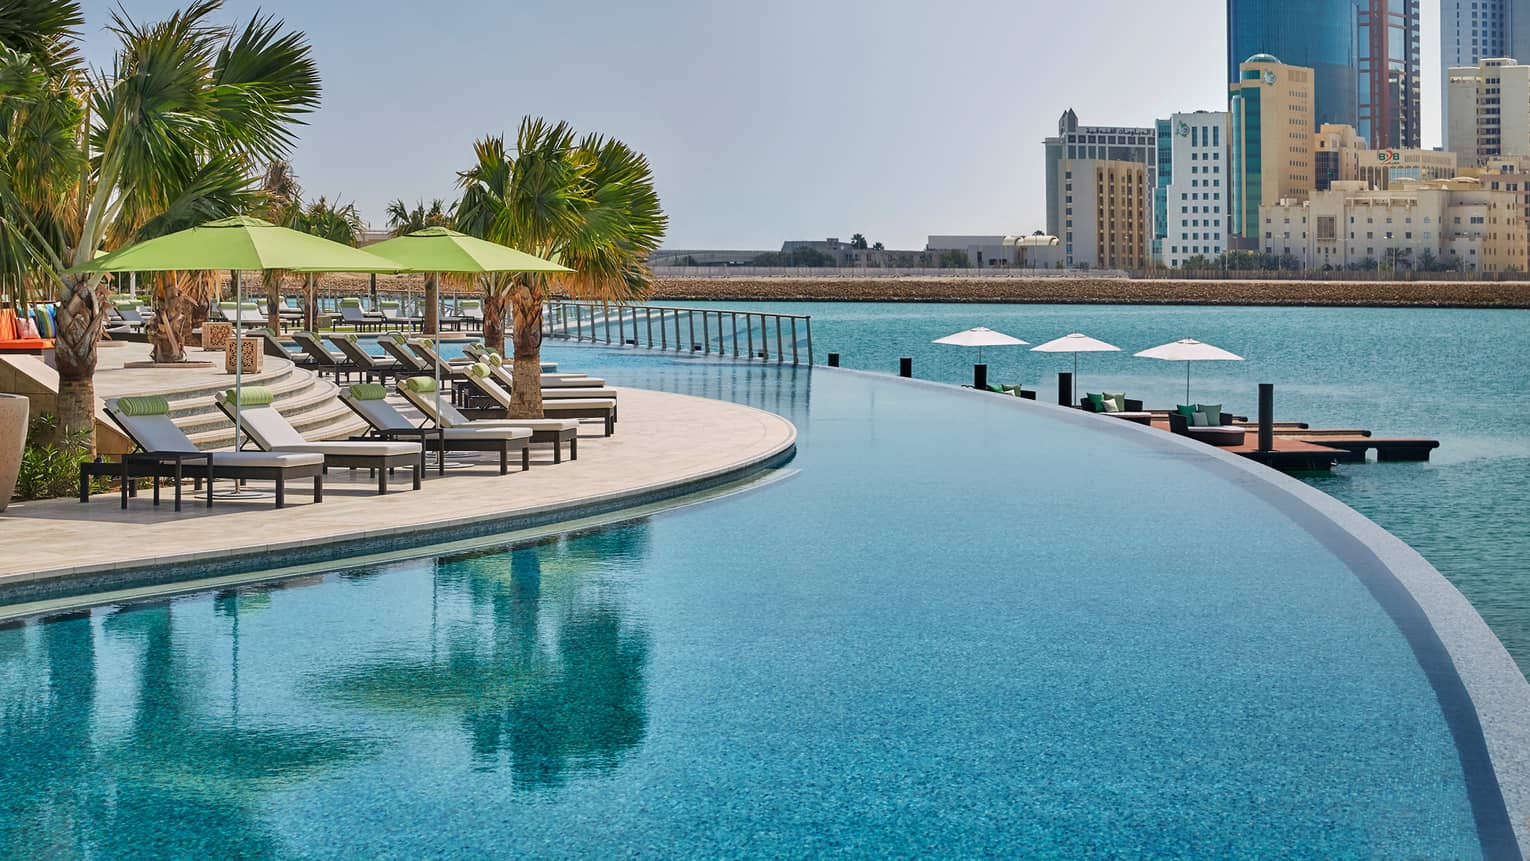 Patio lounge chairs, umbrellas, palm trees line curved outdoor infinity swimming pool along Arabian Gulf